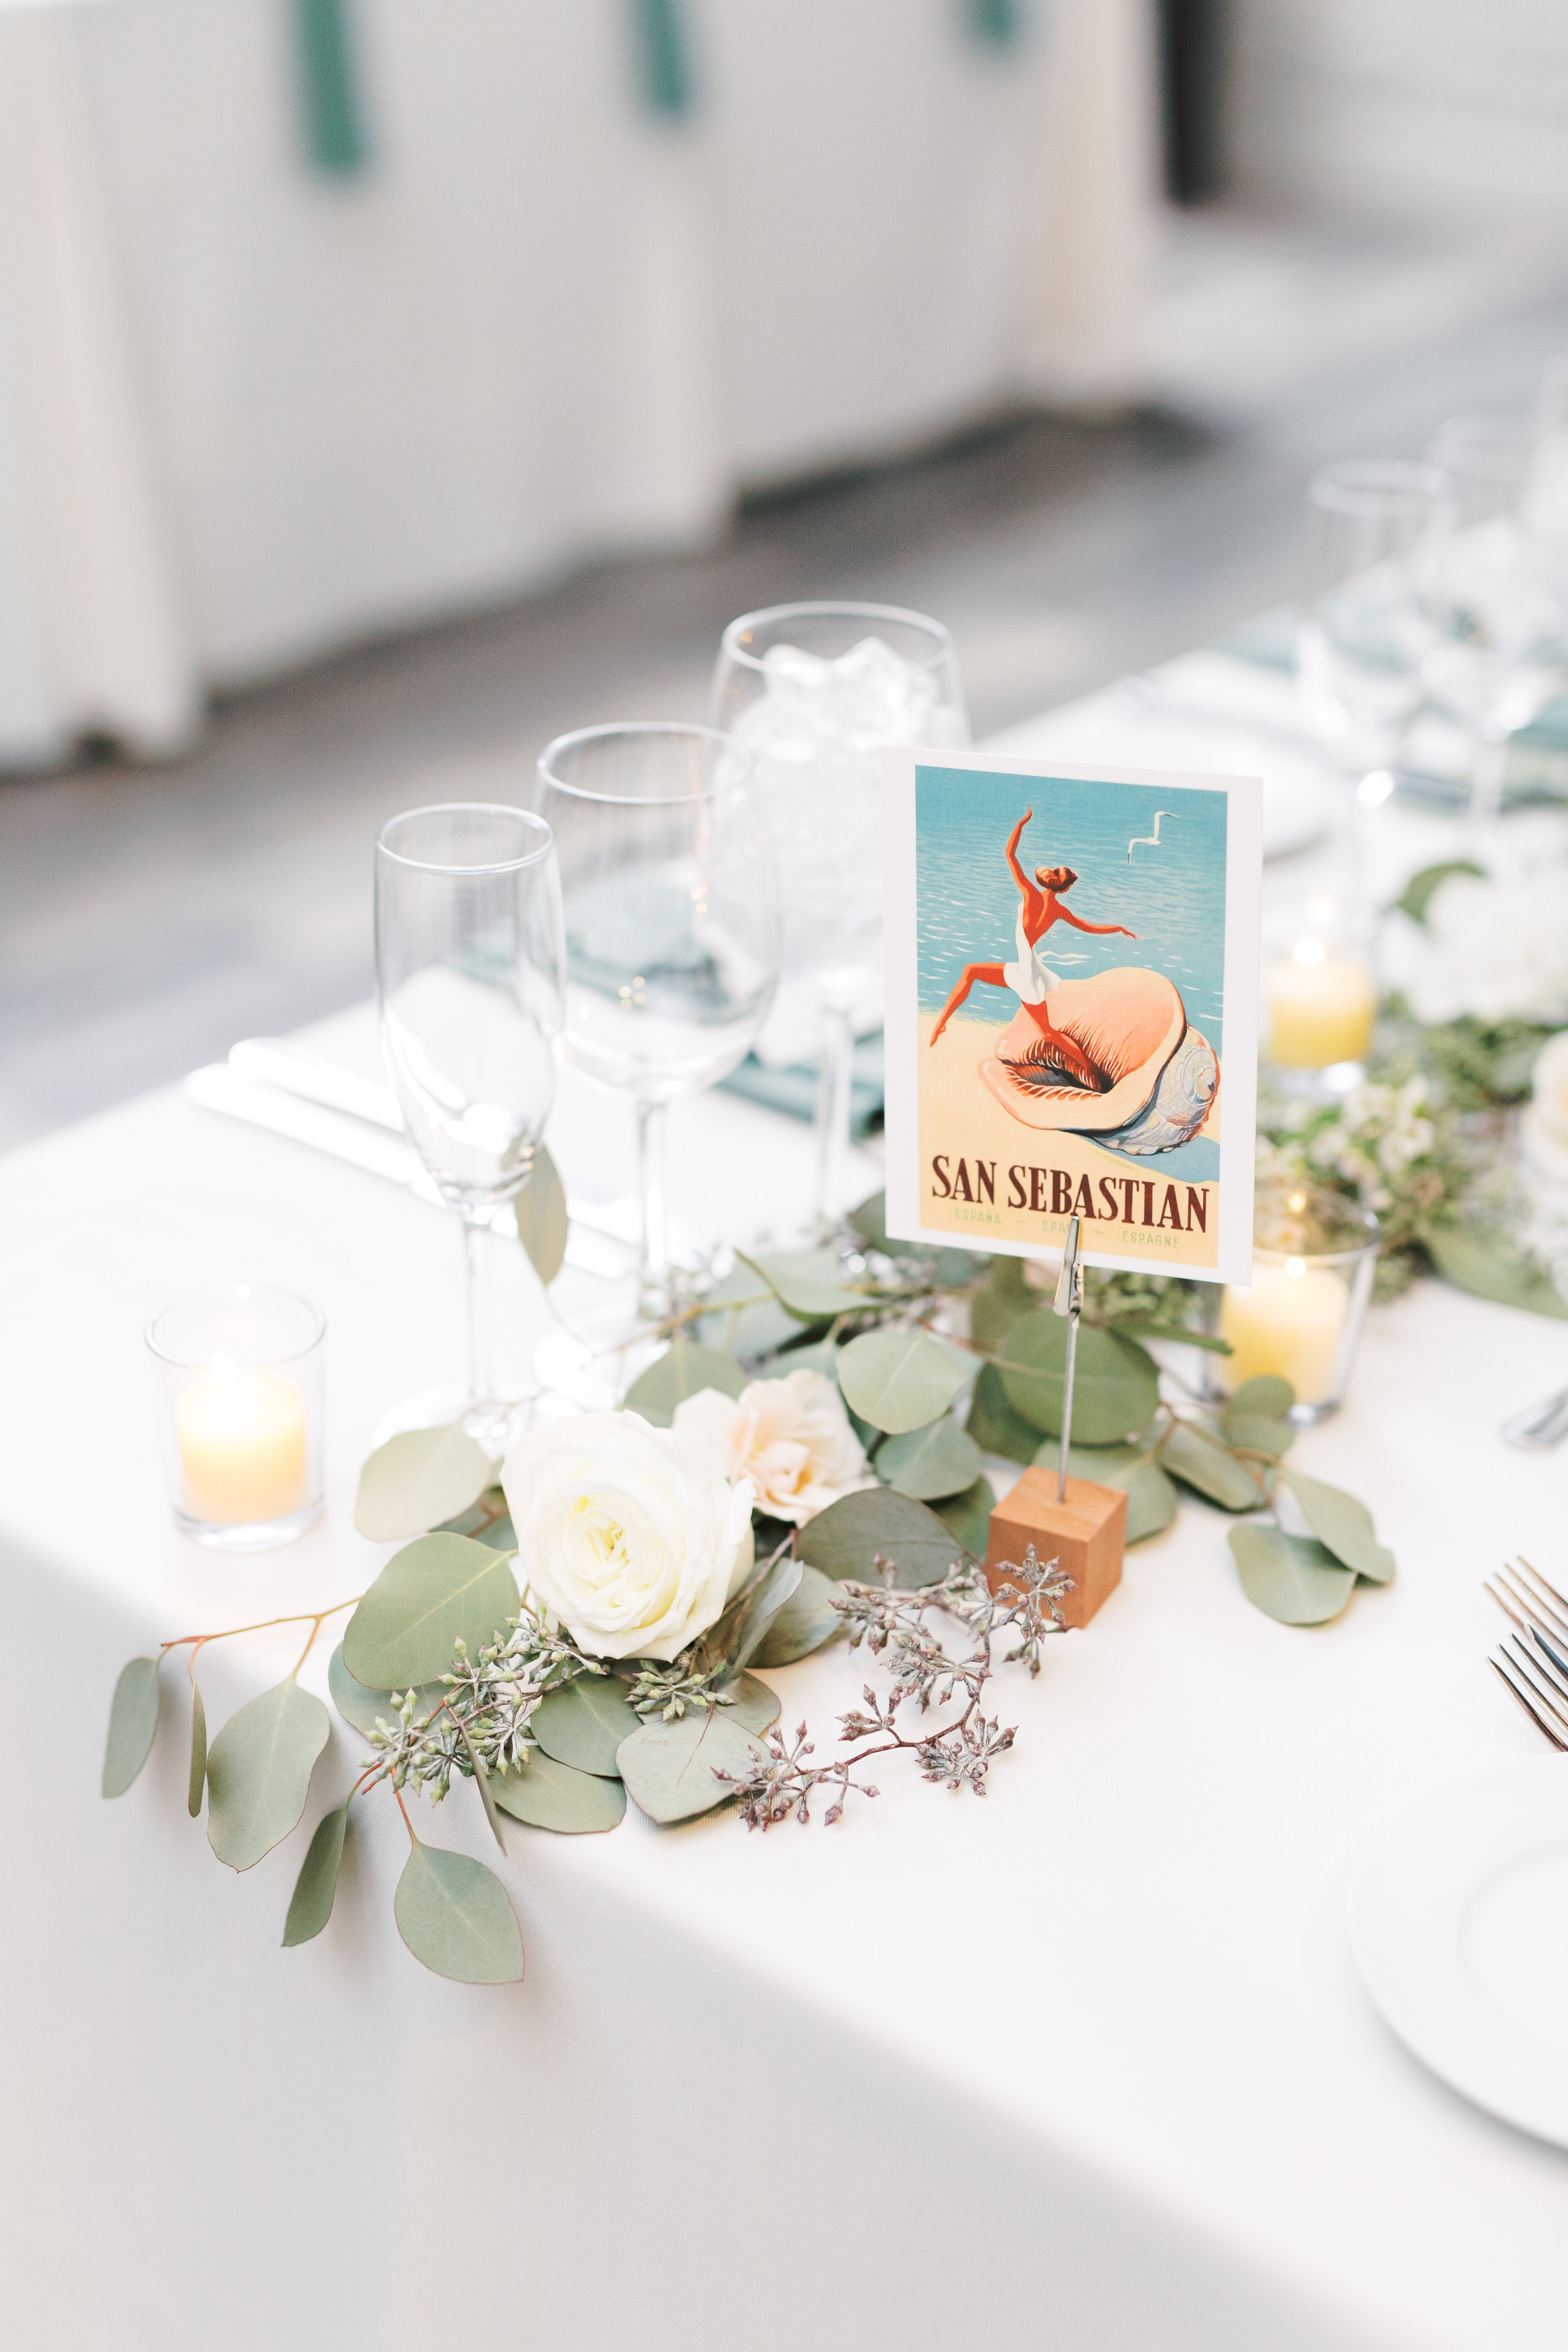 Reception setup at FAME, industrial and modern warehouse Philadelphia wedding venue by Haley Richter Photography with travel themed details